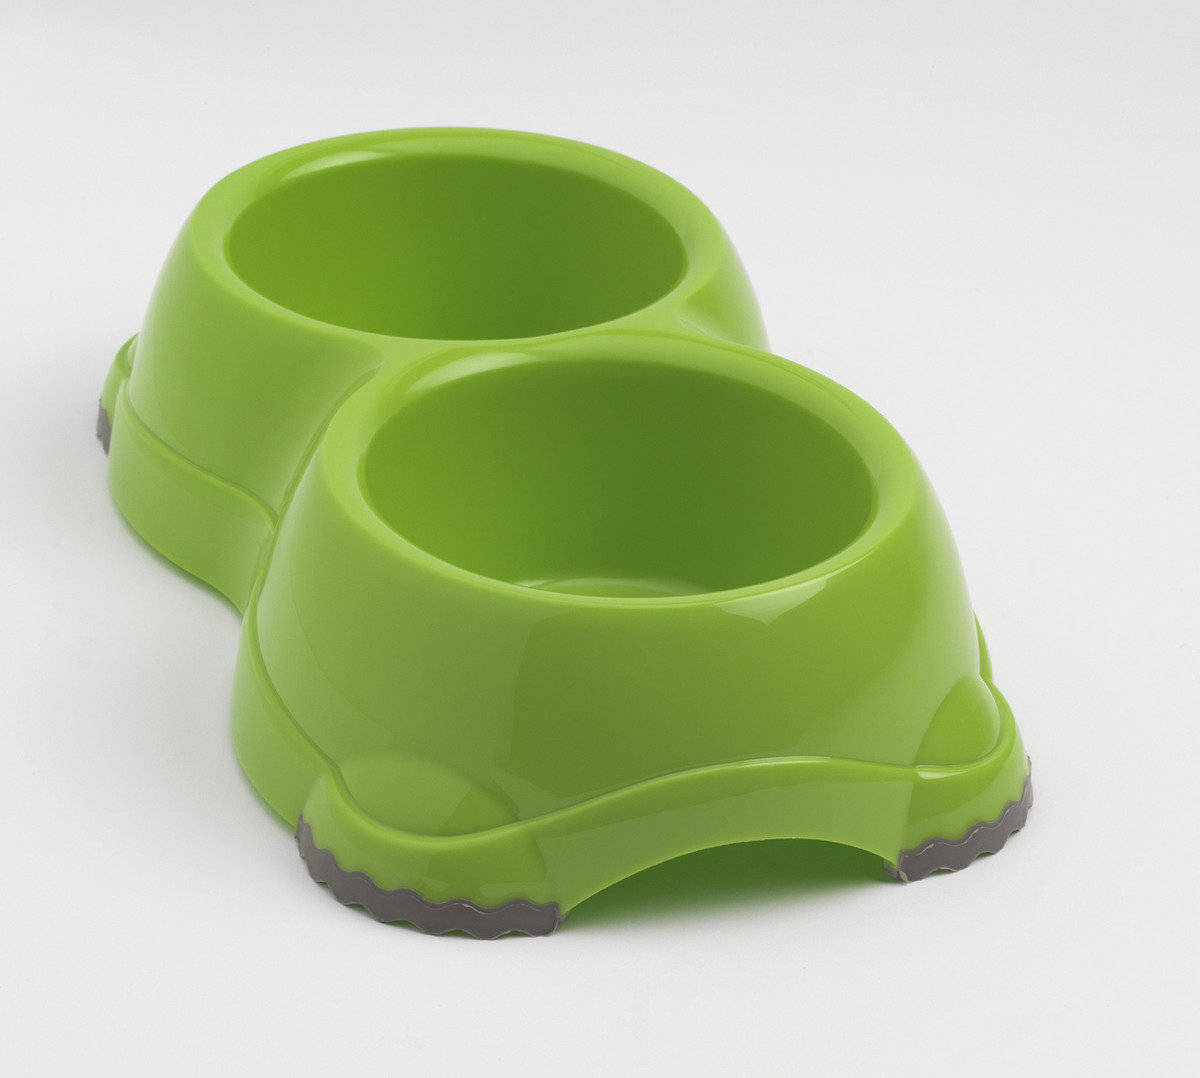 MPH106-08 Double Smarty Bowl H106 (Non-slip feet) - Light Green